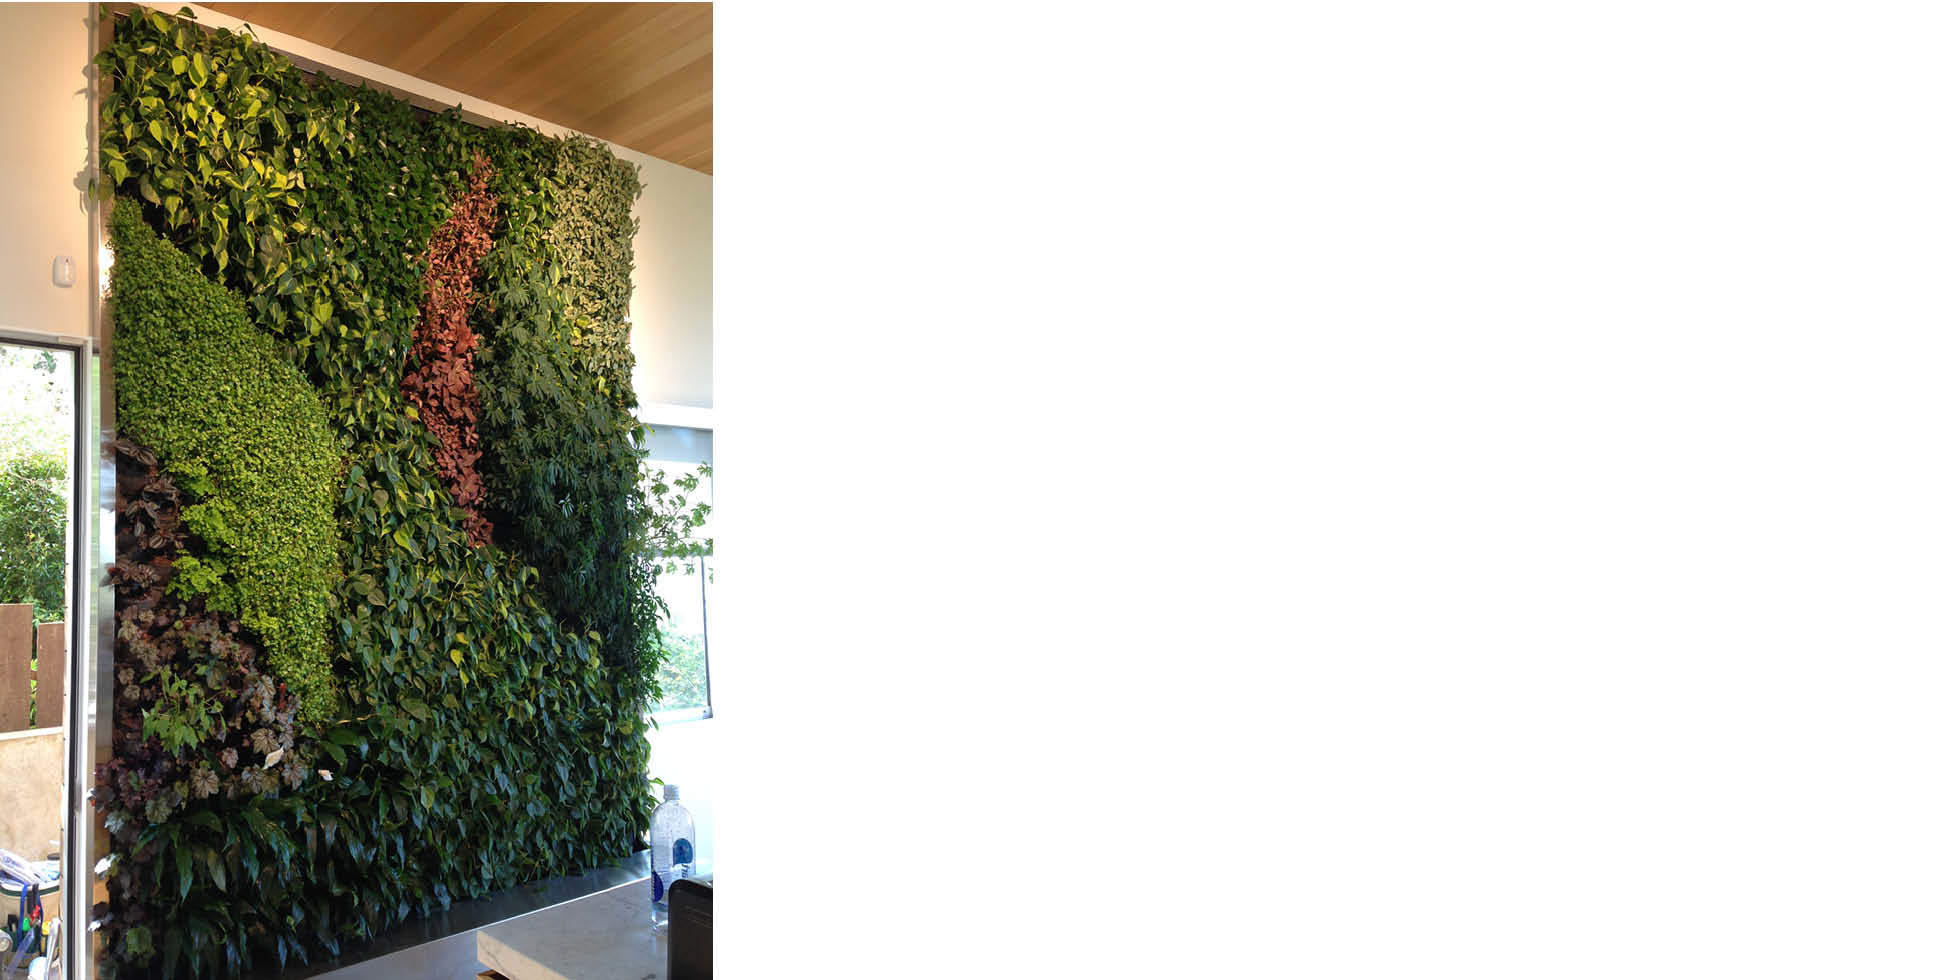 Duncan Street Living Wall by Habitat Horticulture - View 2